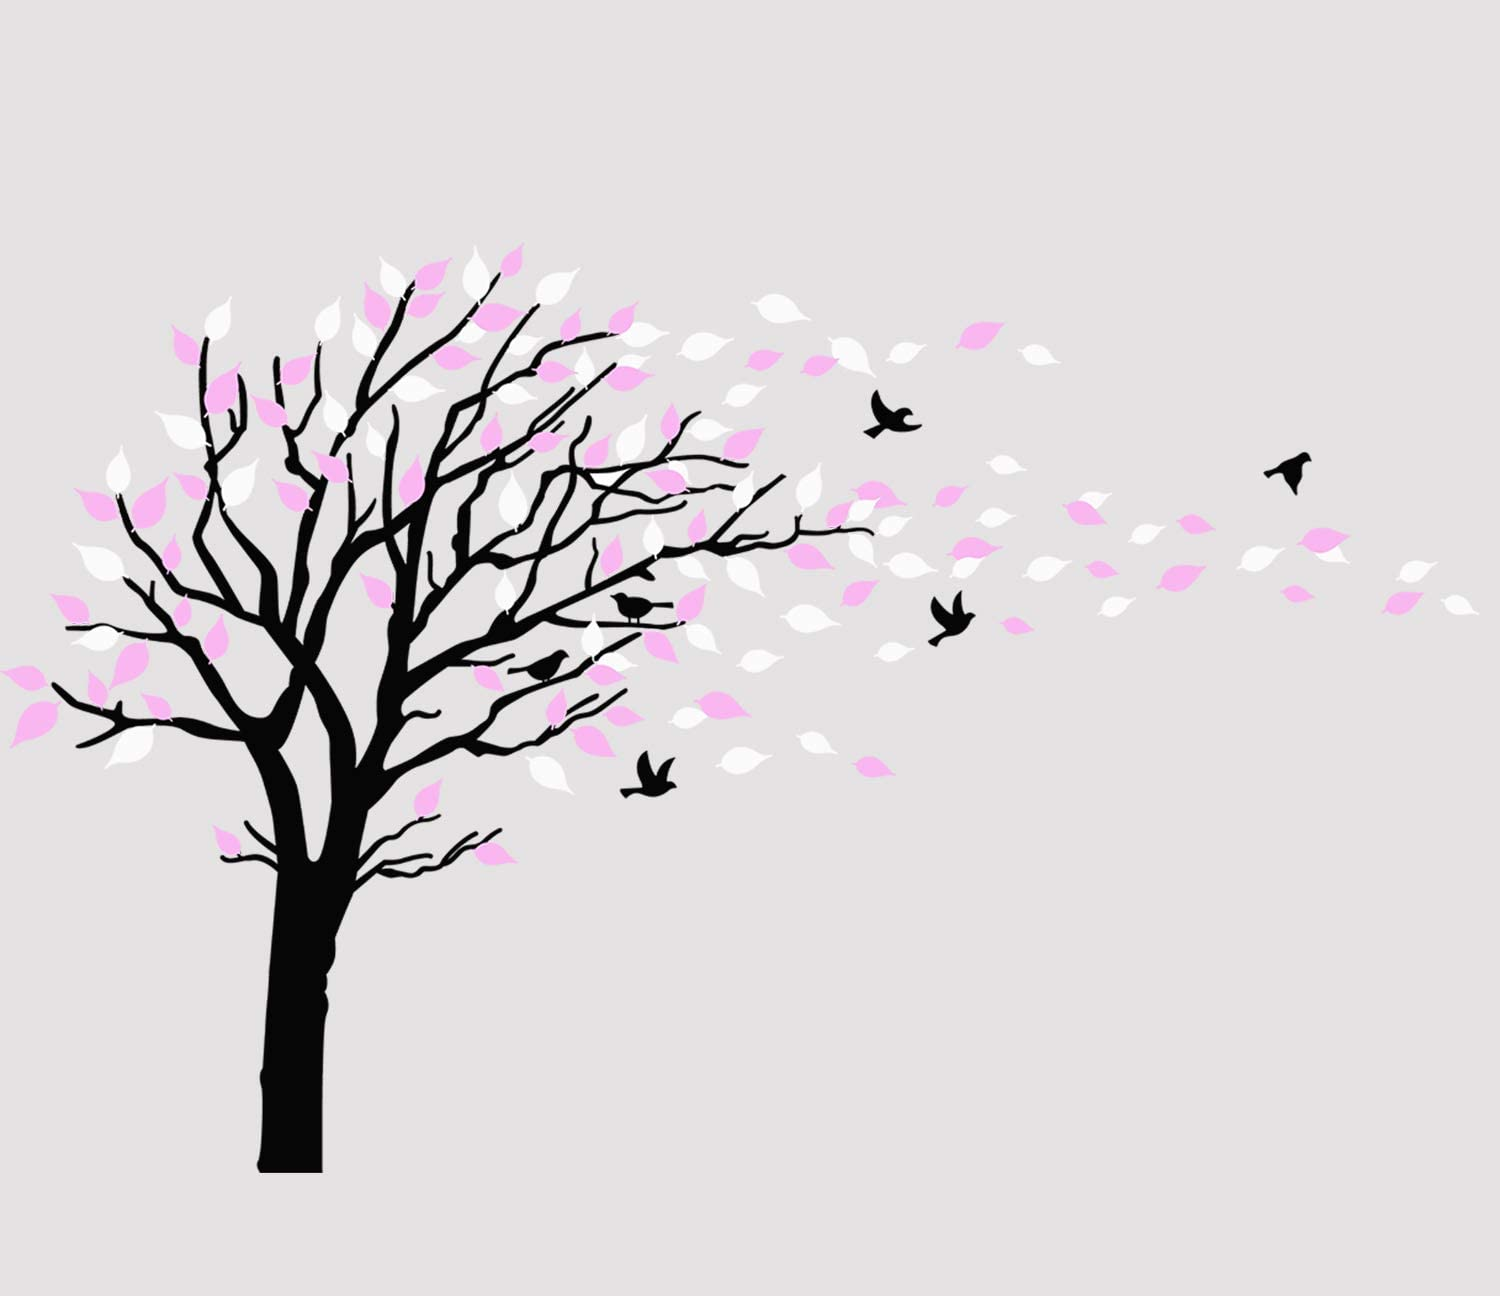 Large Tree Blowing in The Wind Tree Wall Decals Wall Sticker Vinyl Art Kids Rooms Teen Girls Boys Wallpaper Murals Sticker Wall Stickers Nursery Decor Nursery Decals (Black White Pink)